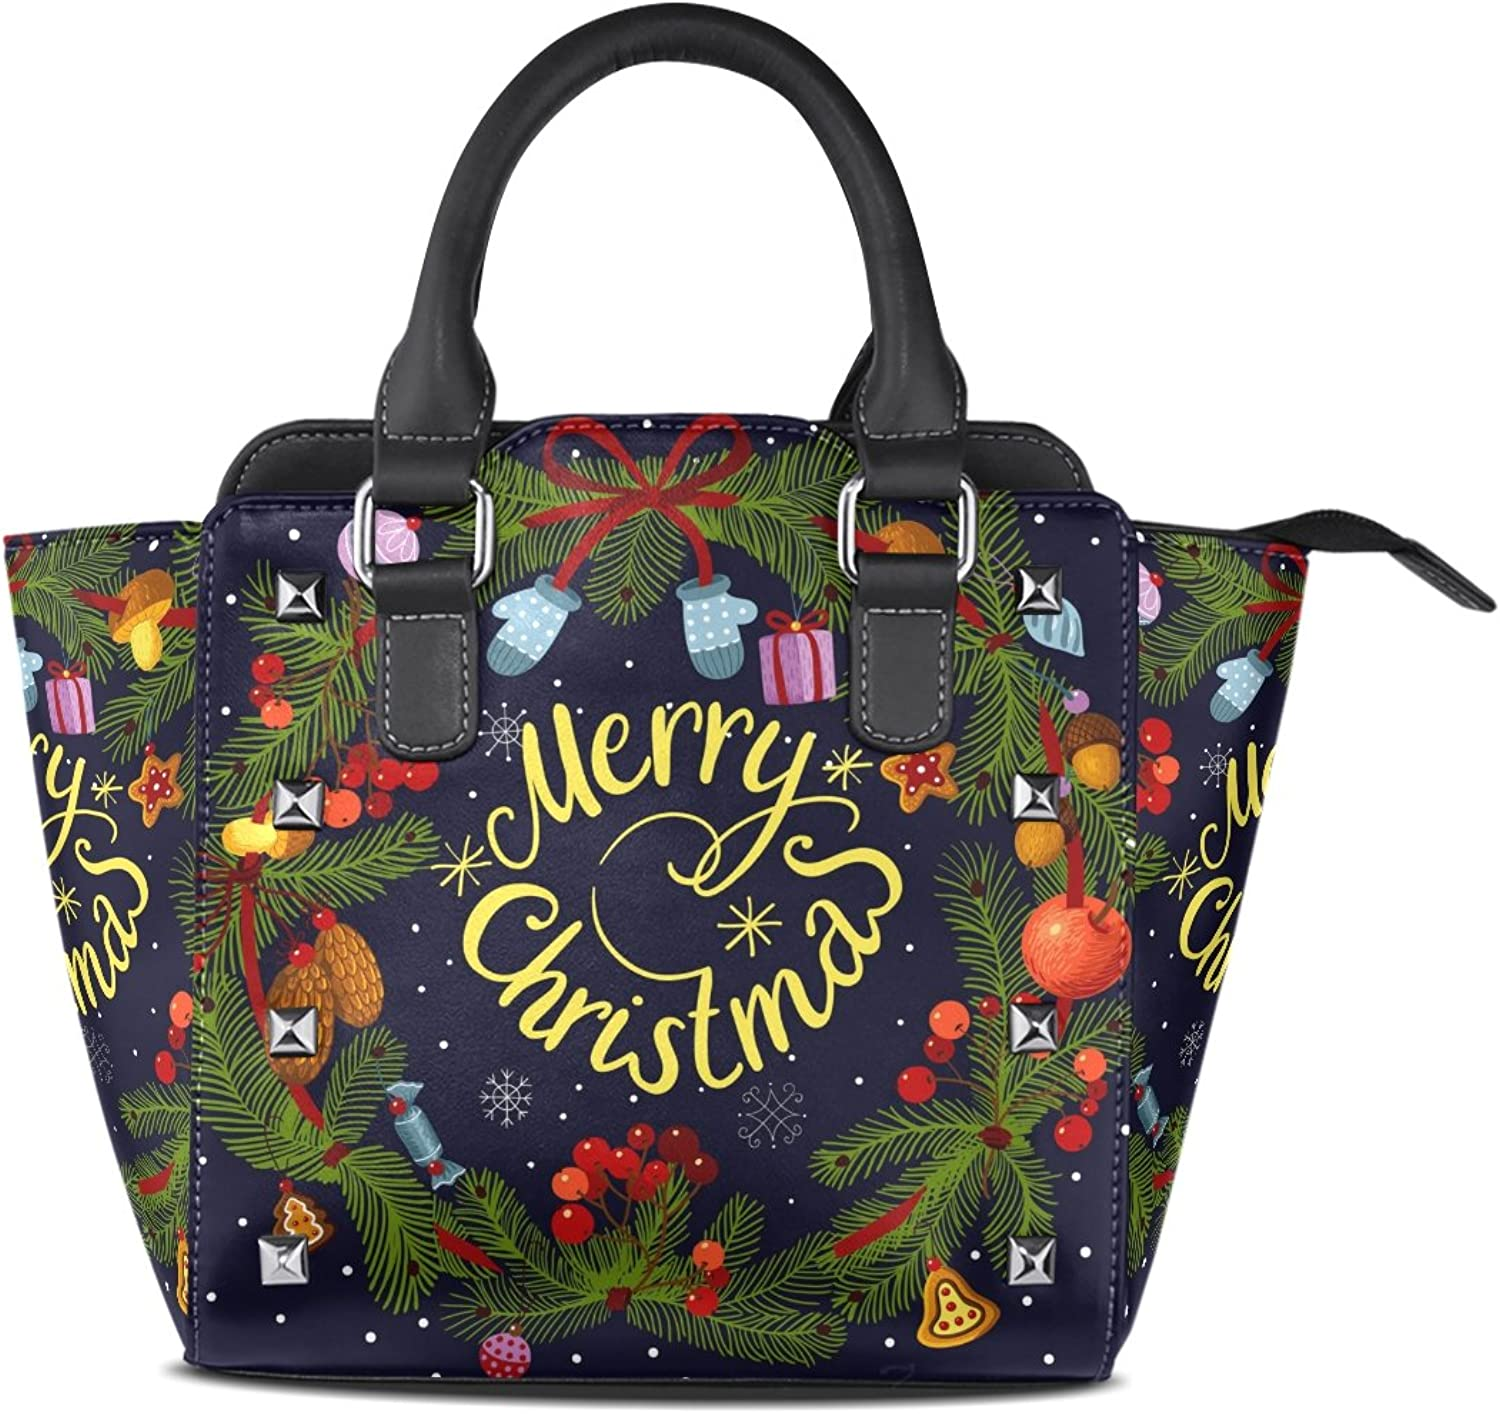 My Little Nest Women's Top Handle Satchel Handbag Merry Christmas Wreath with Decorations Squirrel Ladies PU Leather Shoulder Bag Crossbody Bag